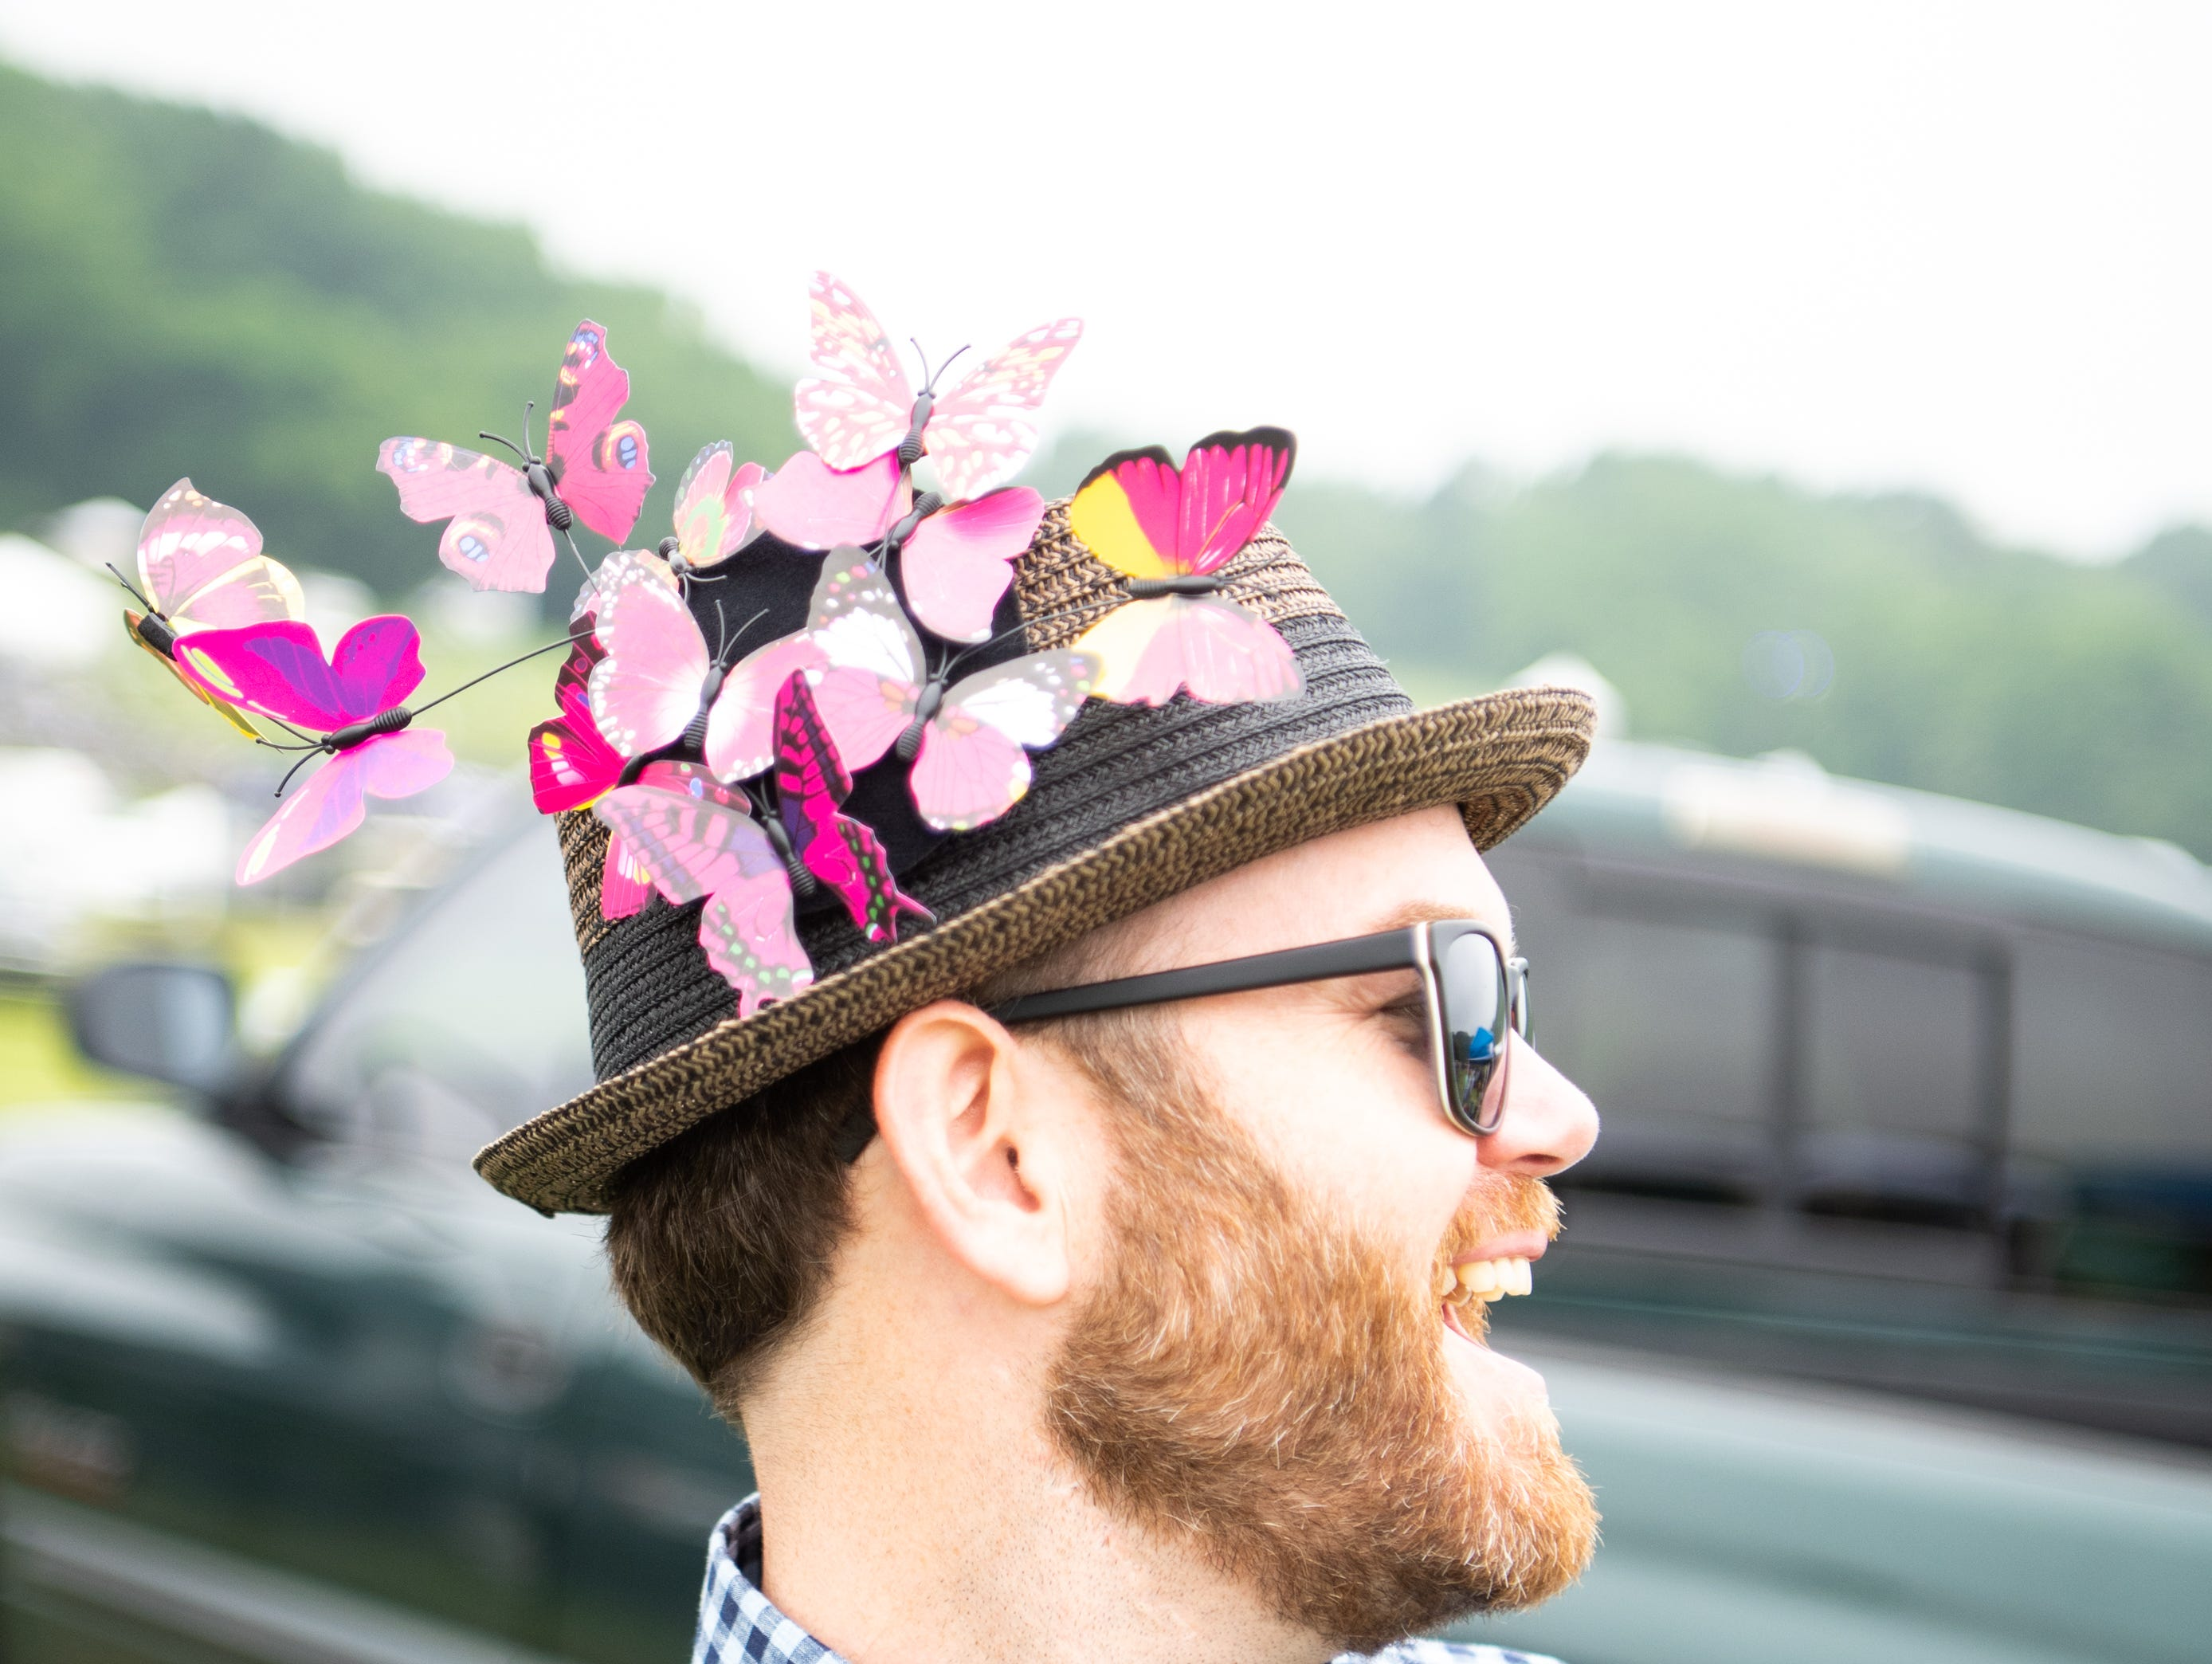 Matthew Meadows wears a butterfly hat during the Iroquois Steeplechase at Percy Warner Park Saturday, May 11, 2019, in Nashville, Tenn.